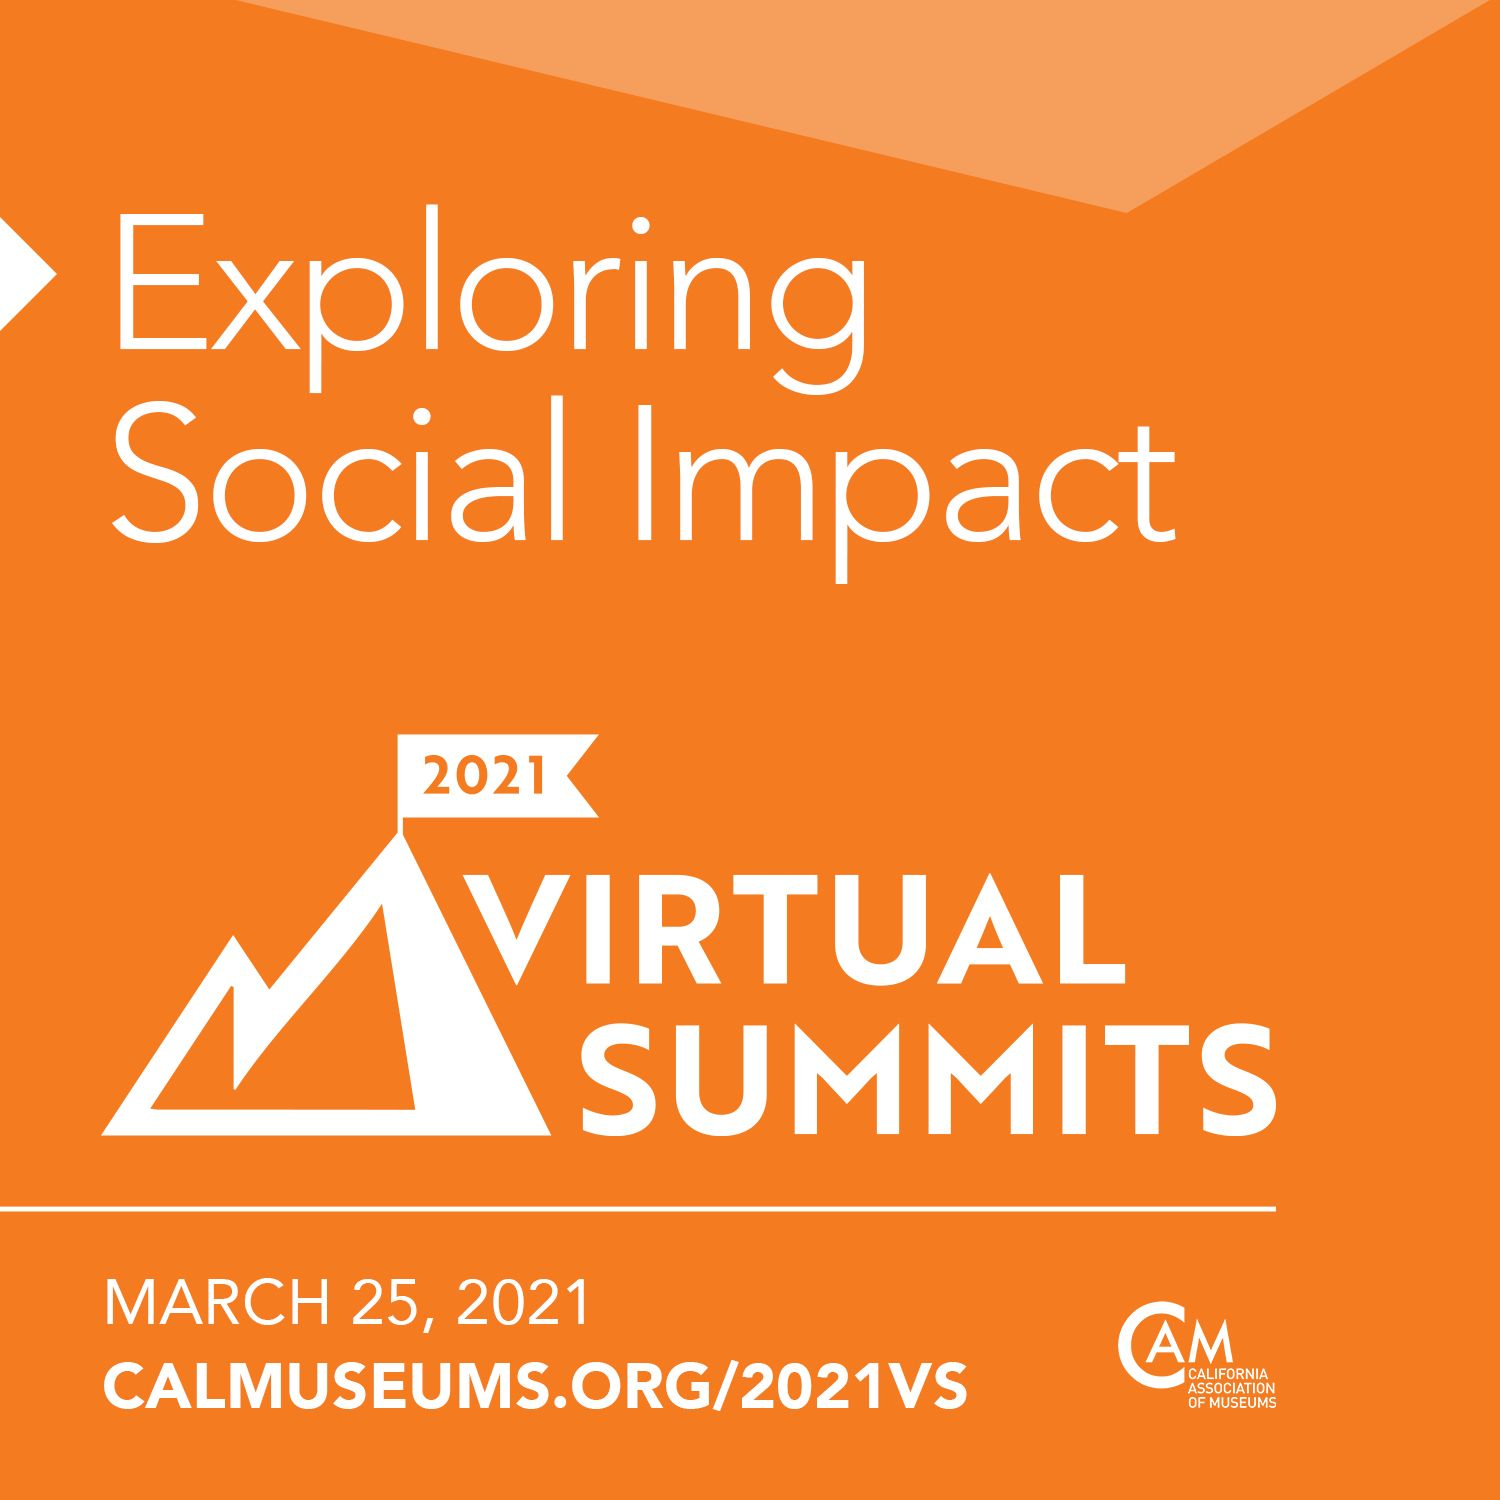 """White text on an orange background that reads Exploring Social Impact. 2021 Virtual Summits. March 25, 2021 calmuseums.org/2021vs"""""""